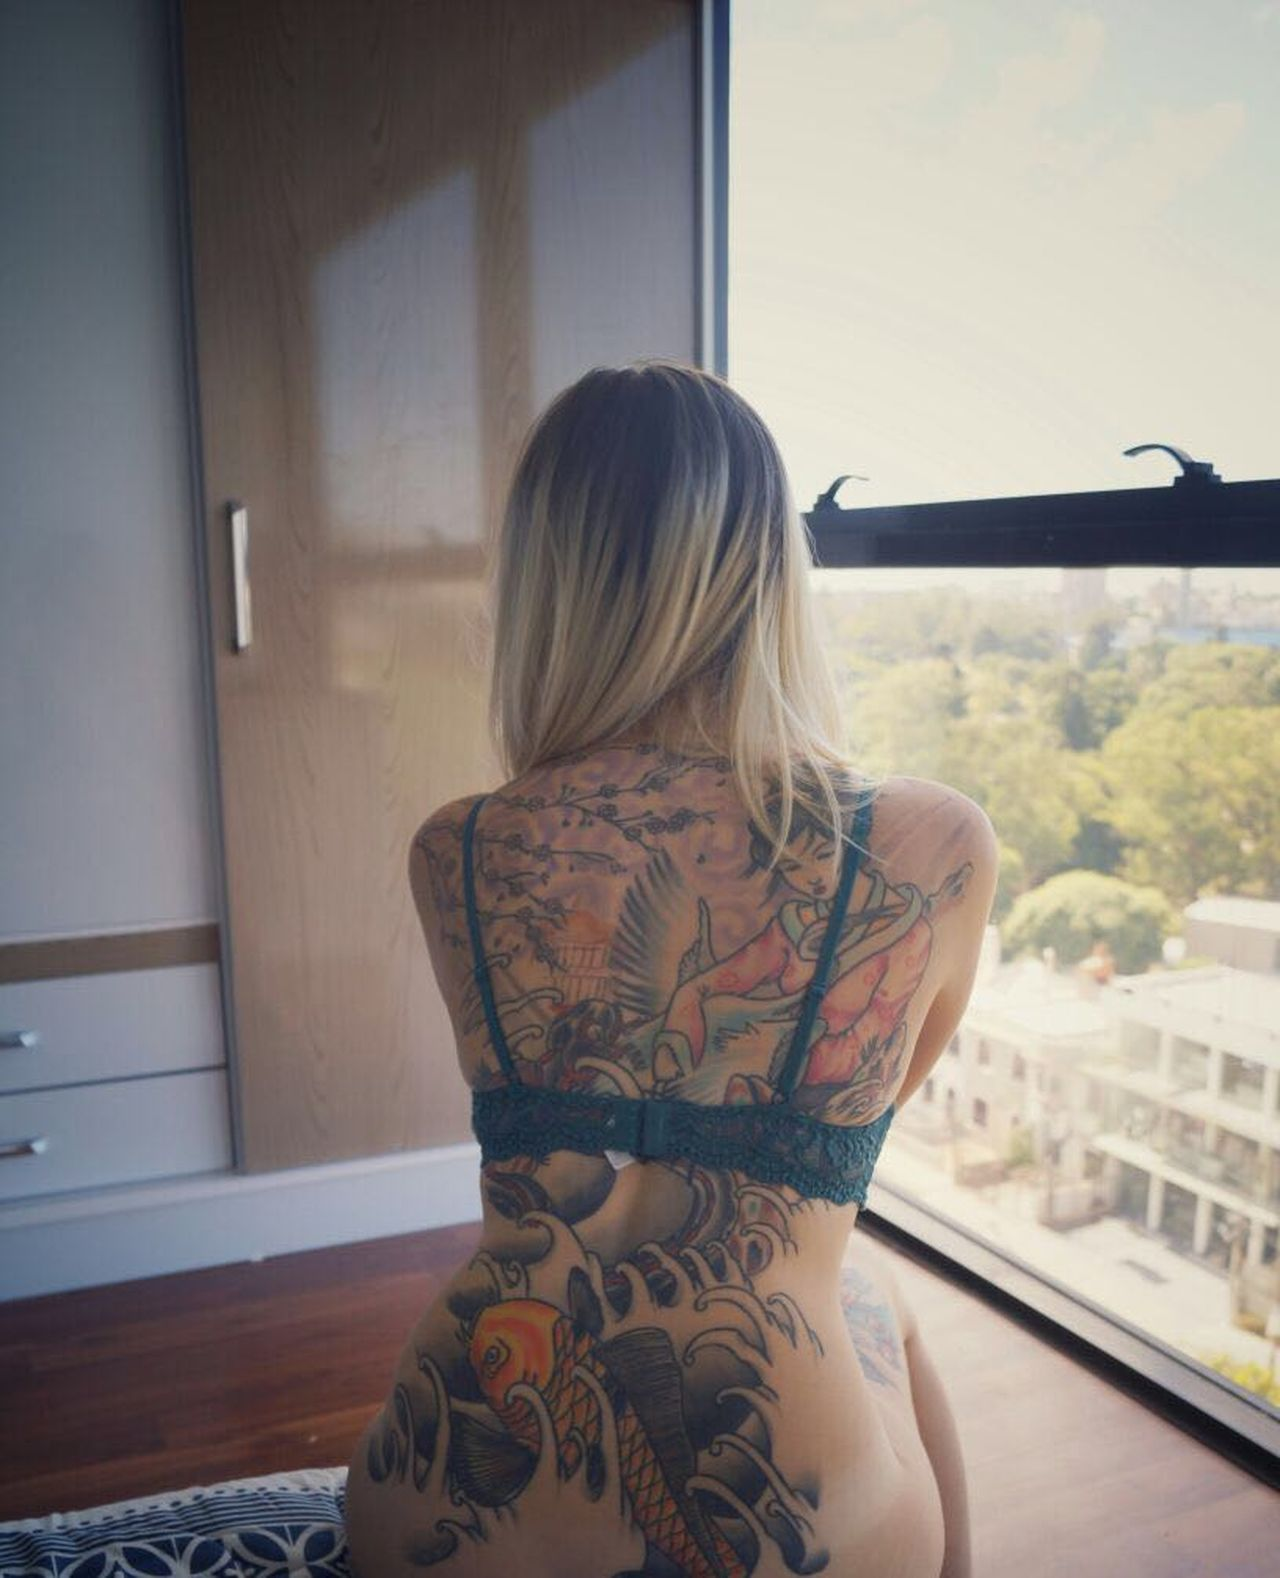 One Woman Only Only Women One Person Adults Only Window Long Hair Blond Hair One Young Woman Only Young Adult Adult Indoors  People Looking Through Window Rear View Young Women Day Beauty Women Sensual 💕 INKEDGIRL SexyGirl.♥ Sexywoman Tattooed Beautiful Woman Day Dreaming